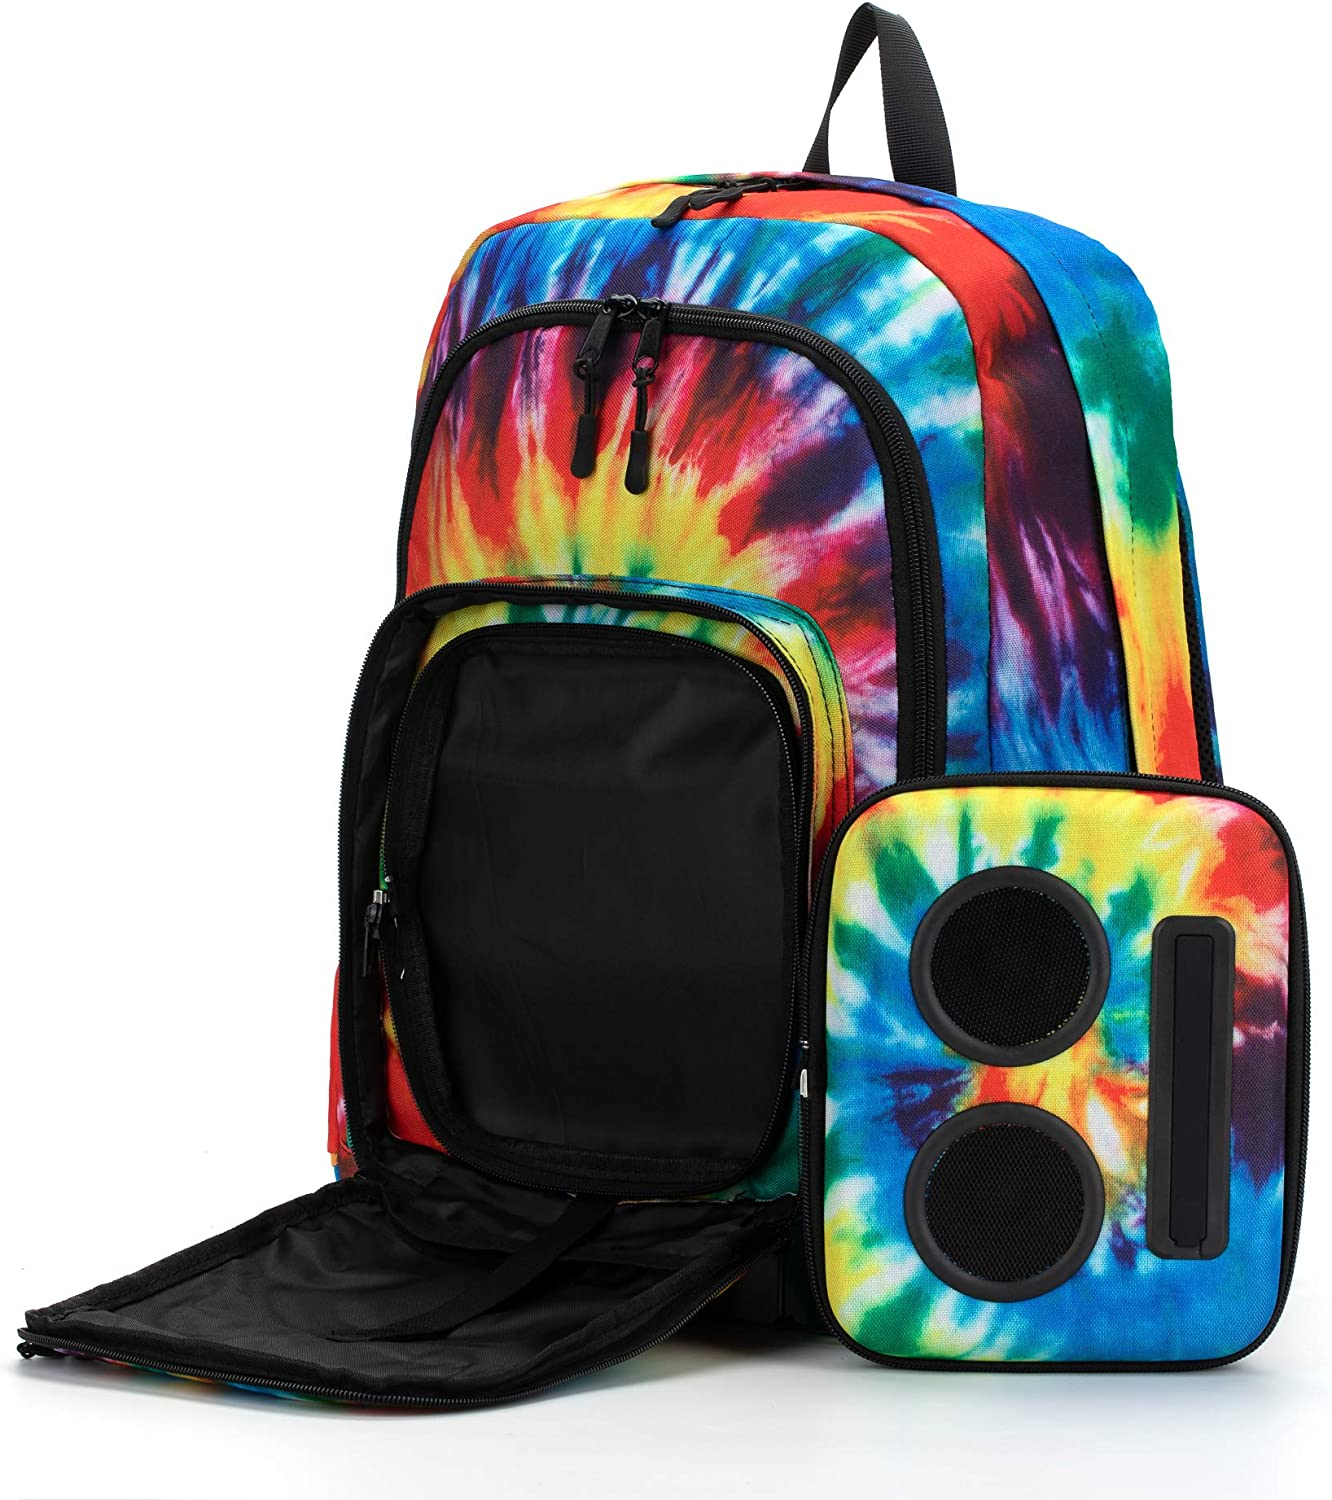 Bluetooth Speaker Backpack with 20-Watt Speakers /& Subwoofer for Parties//Festivals//Beach//School Works with iPhone /& Android Rechargeable Tie Dye, 2019 Edition